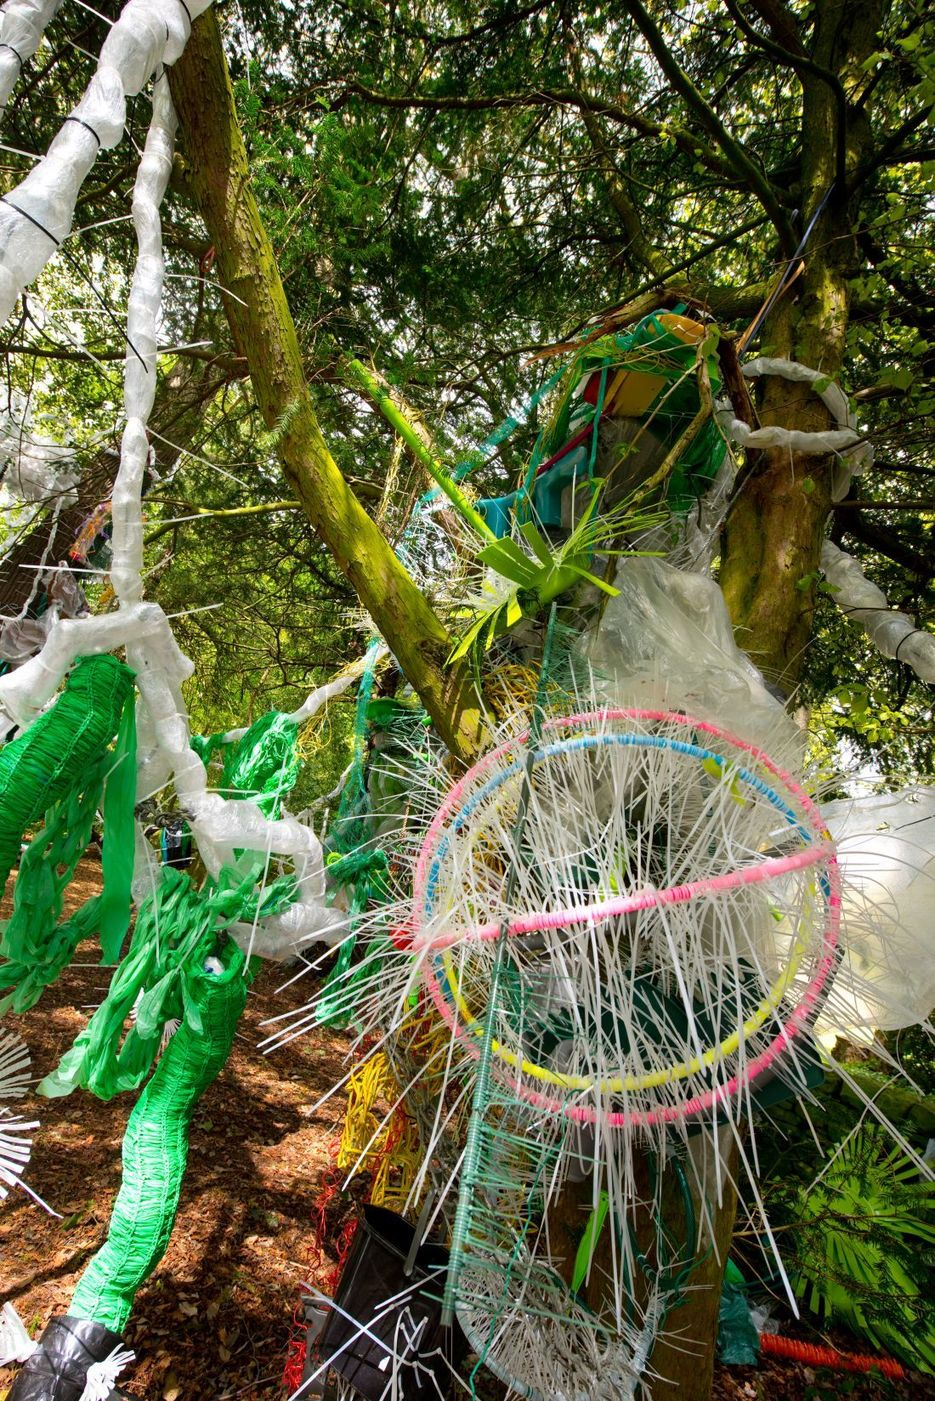 , Single-use plastic engulfs a pretty woodland in a new installation by artist Clare Townley, The Circular Economy